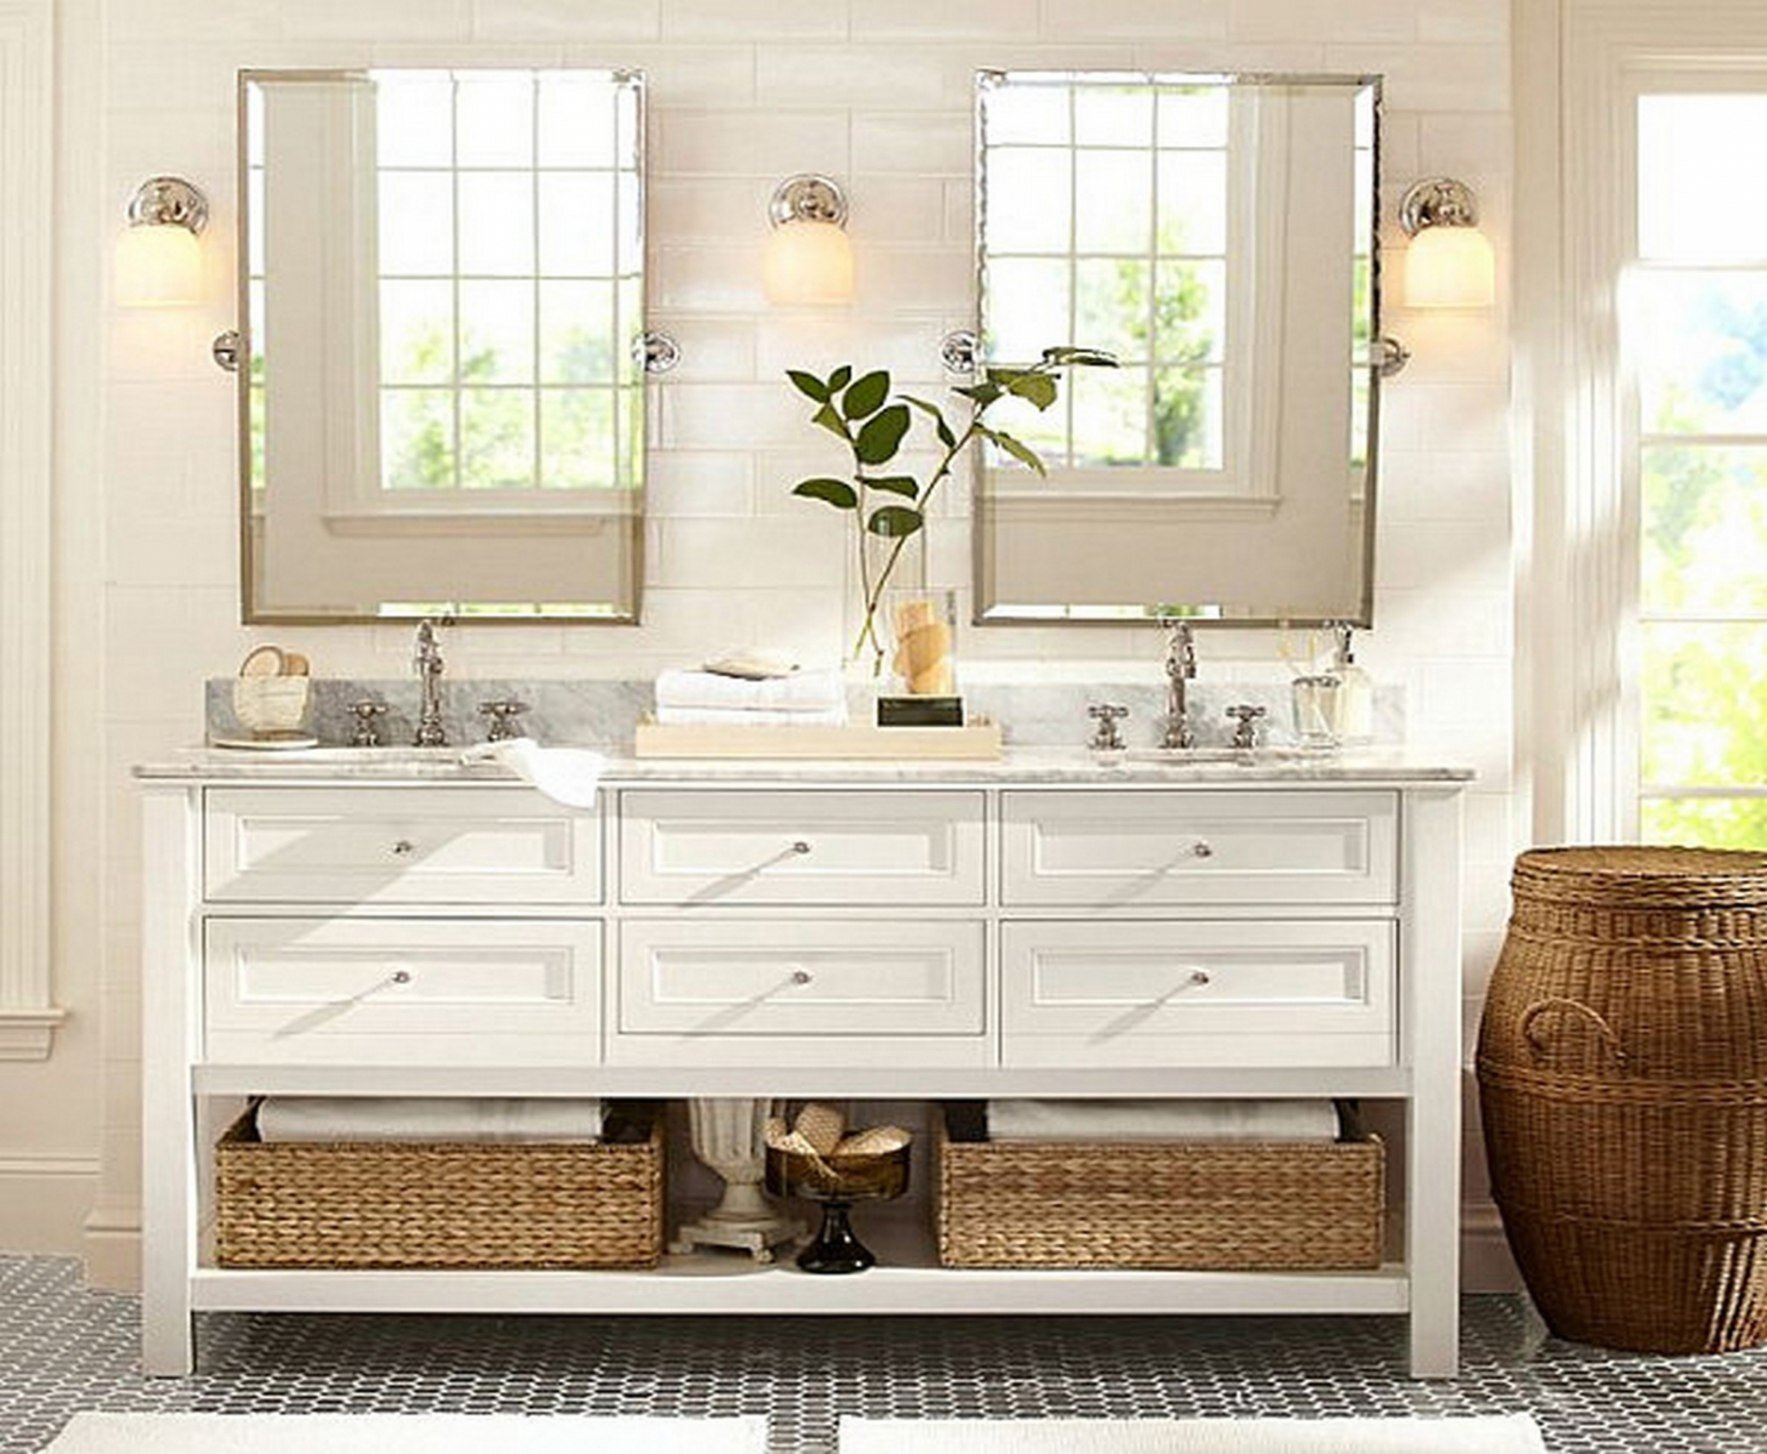 Where To Buy Bathroom Vanity | Pottery Barn Teen Vanity | Pottery Barn Vanity